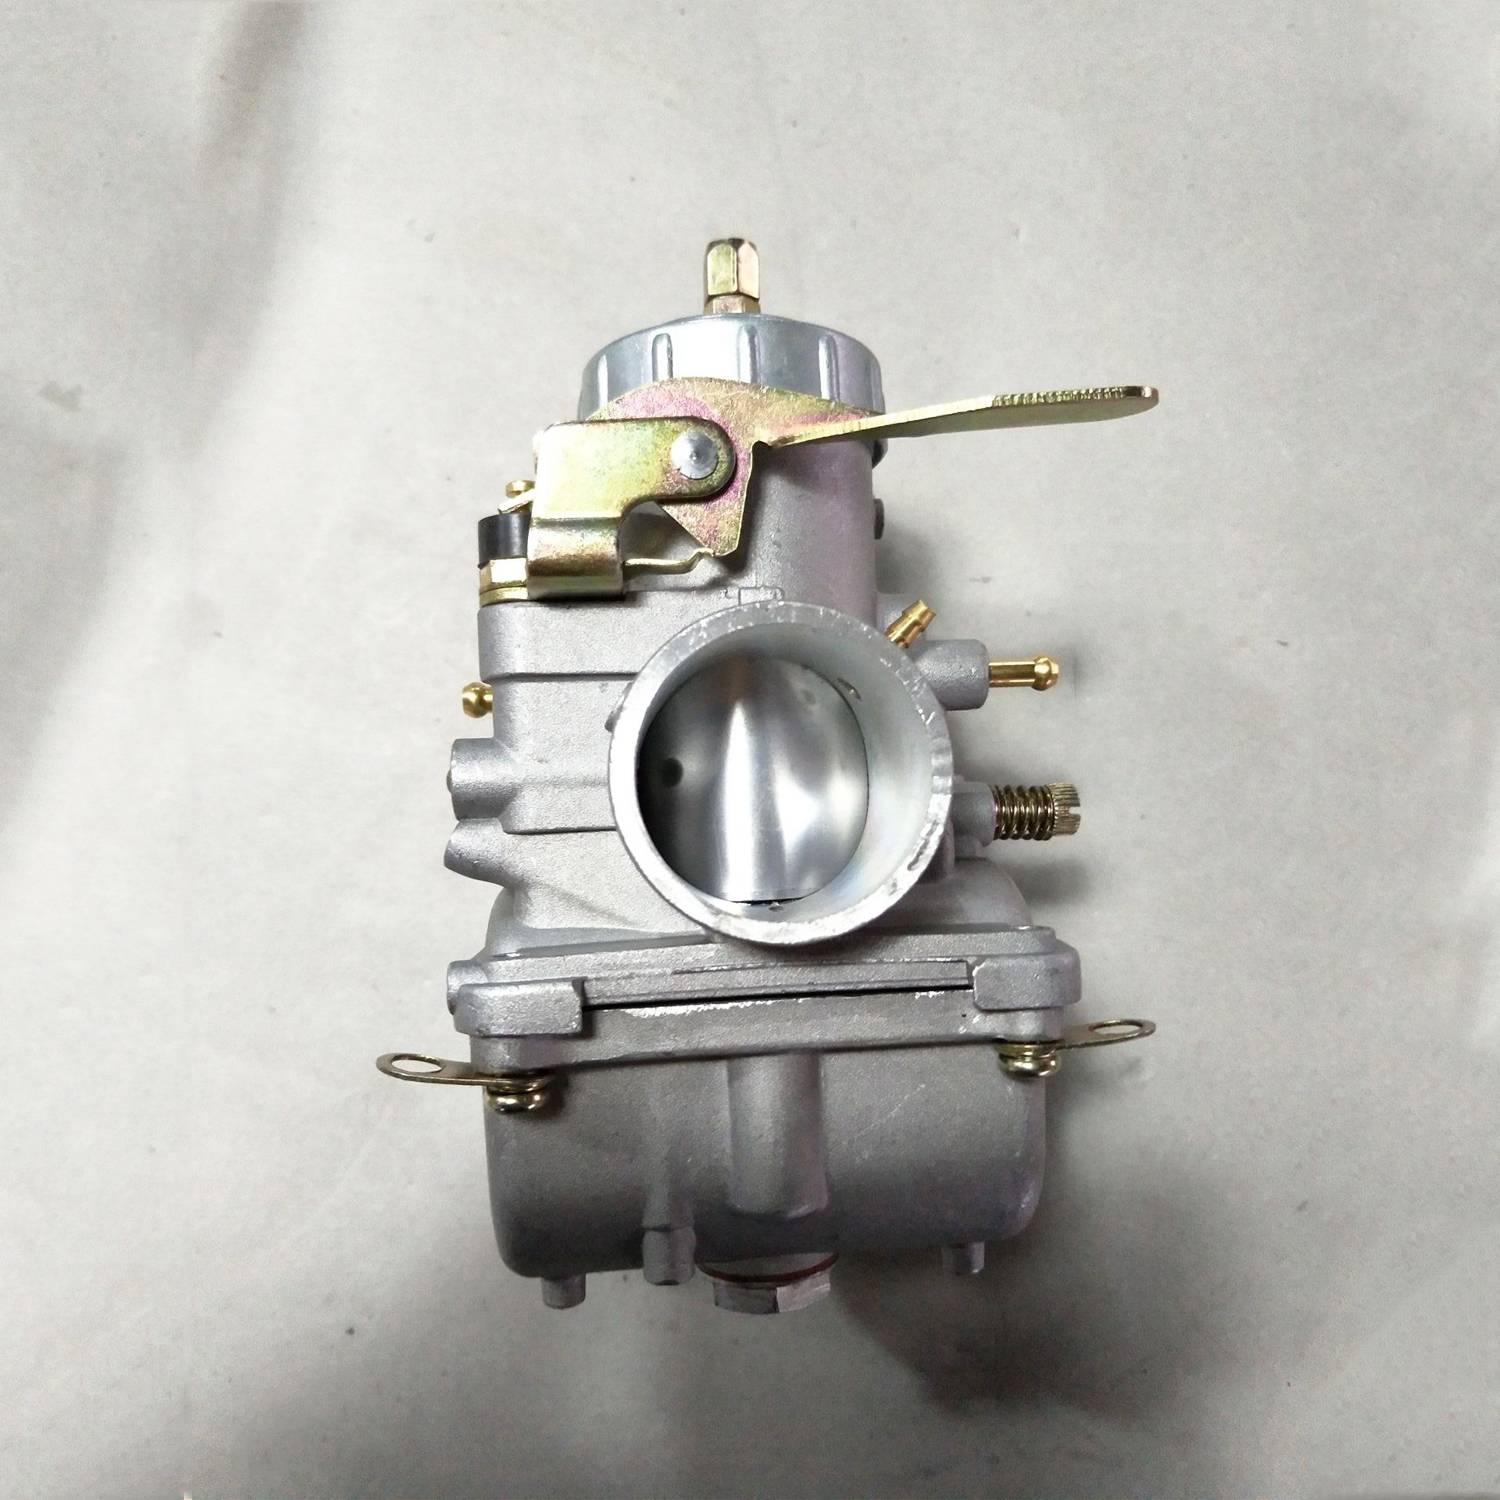 34mm NEW YAMAHA WARRIOR 350 BIG BEAR 350 LY350 ATV350 PERFORMANCE CARB CARBURETOR 1987-2004